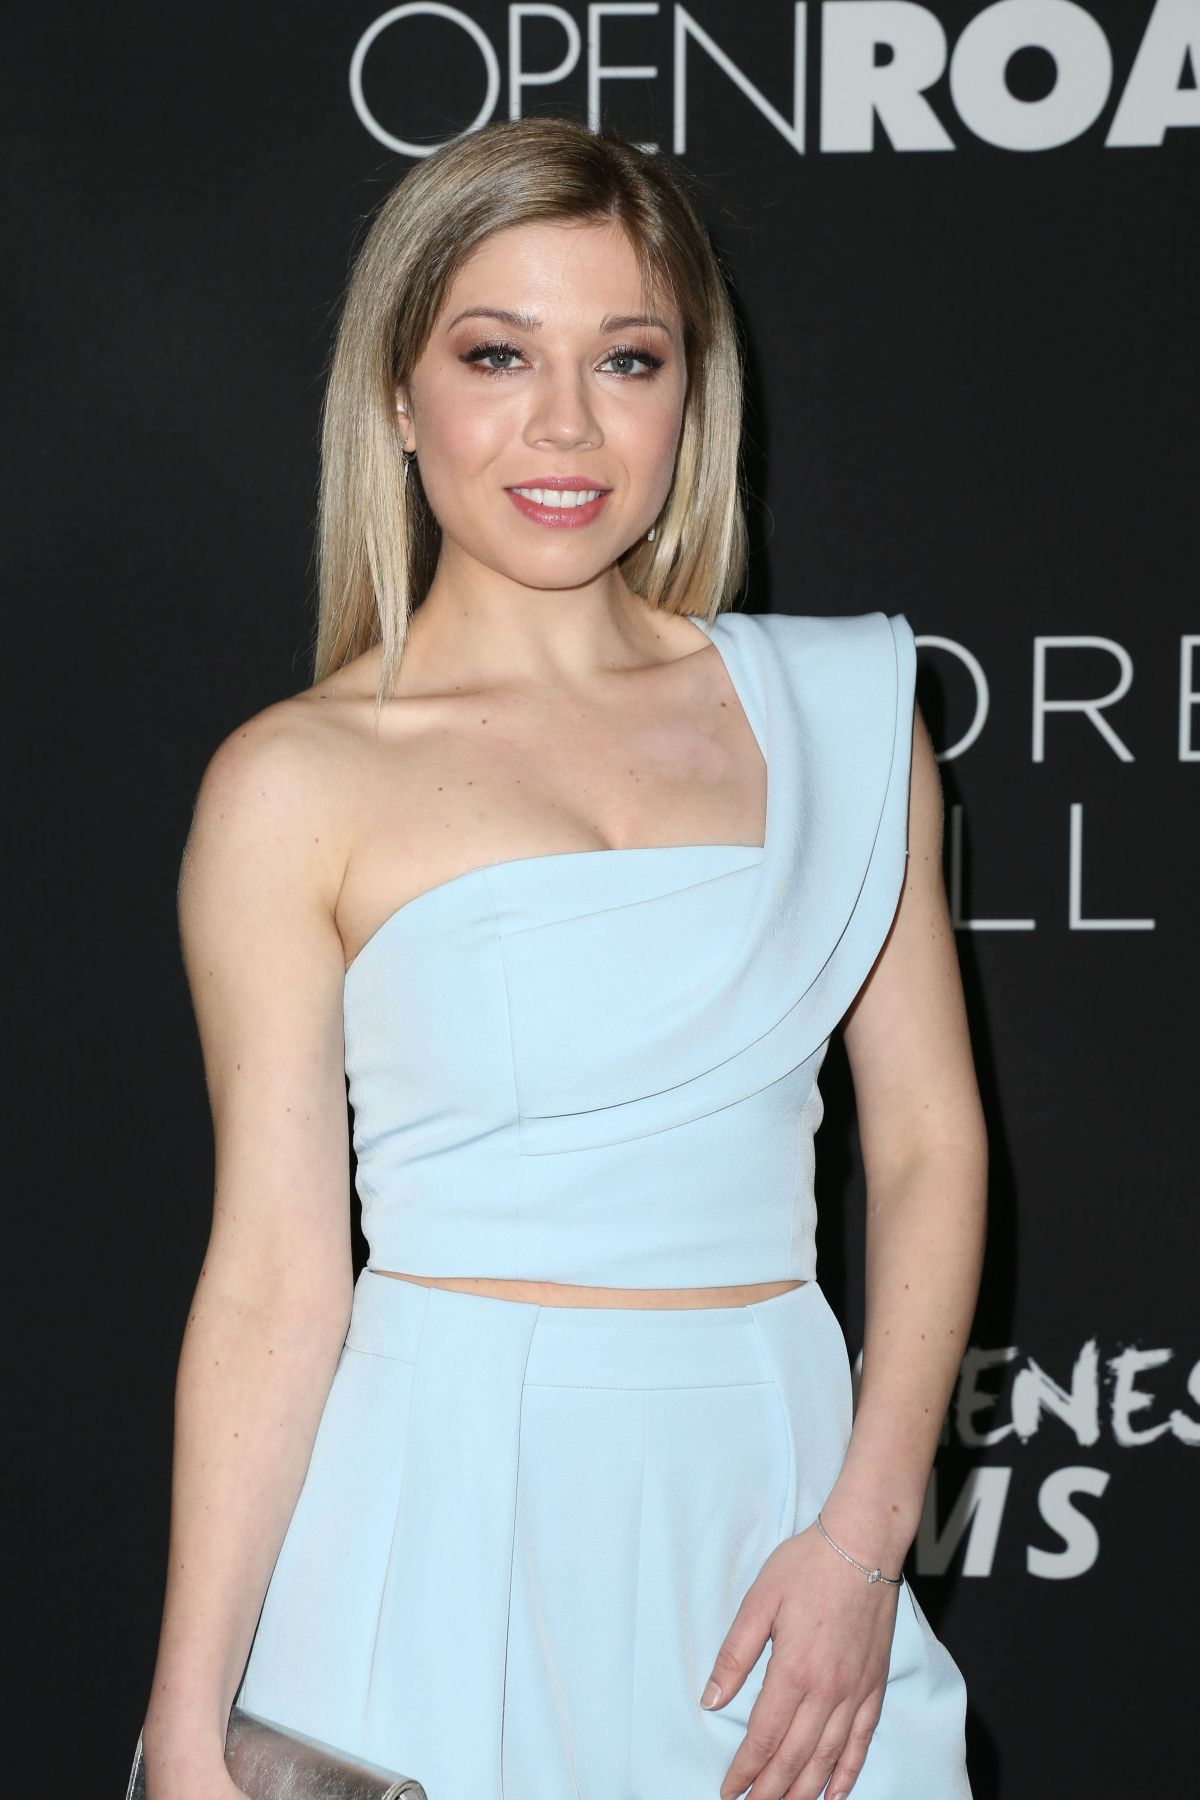 Jennette mccurdy at before i fall premiere in los angeles 0301 jennette mccurdy at before i fall premiere in los angeles 03012017 voltagebd